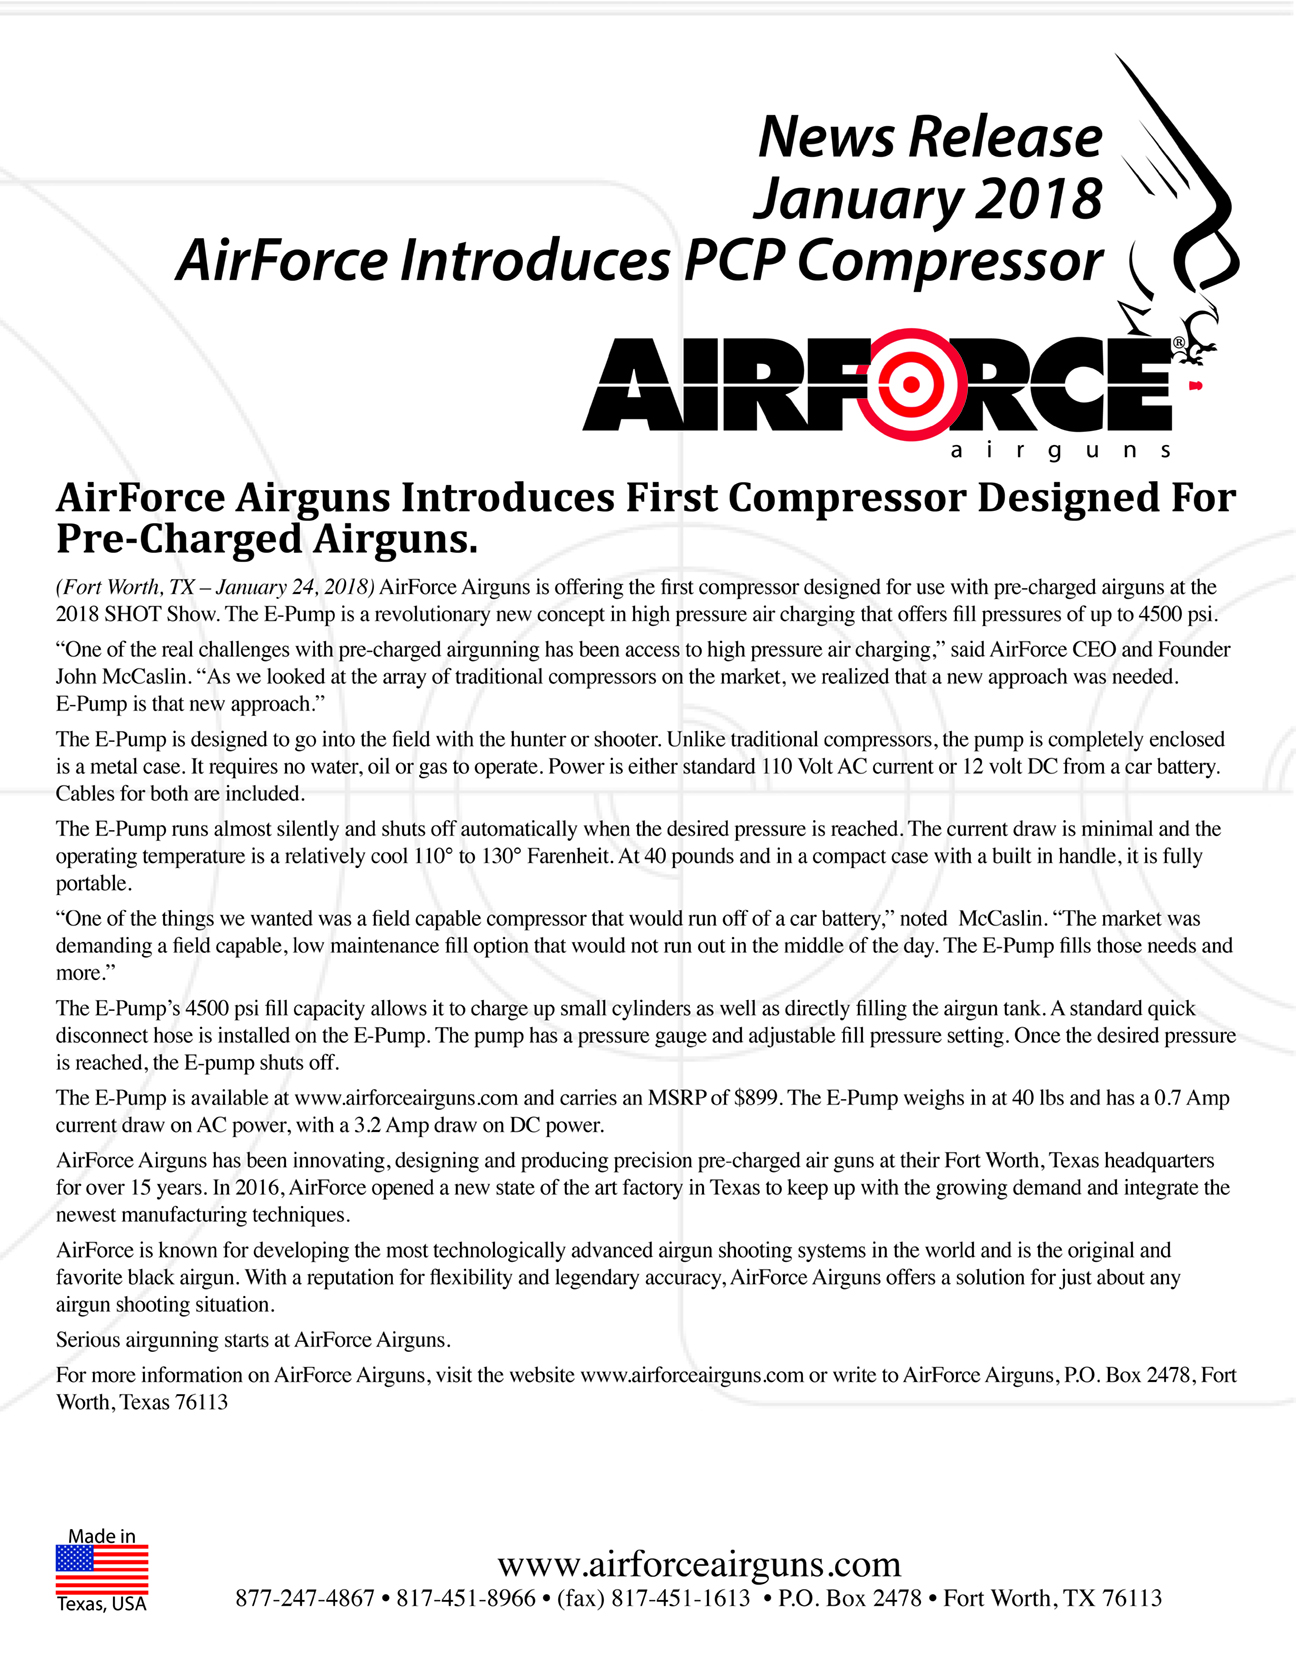 AirForce Airguns Introduces First Compressor Designed ForPre-Charged Airguns.